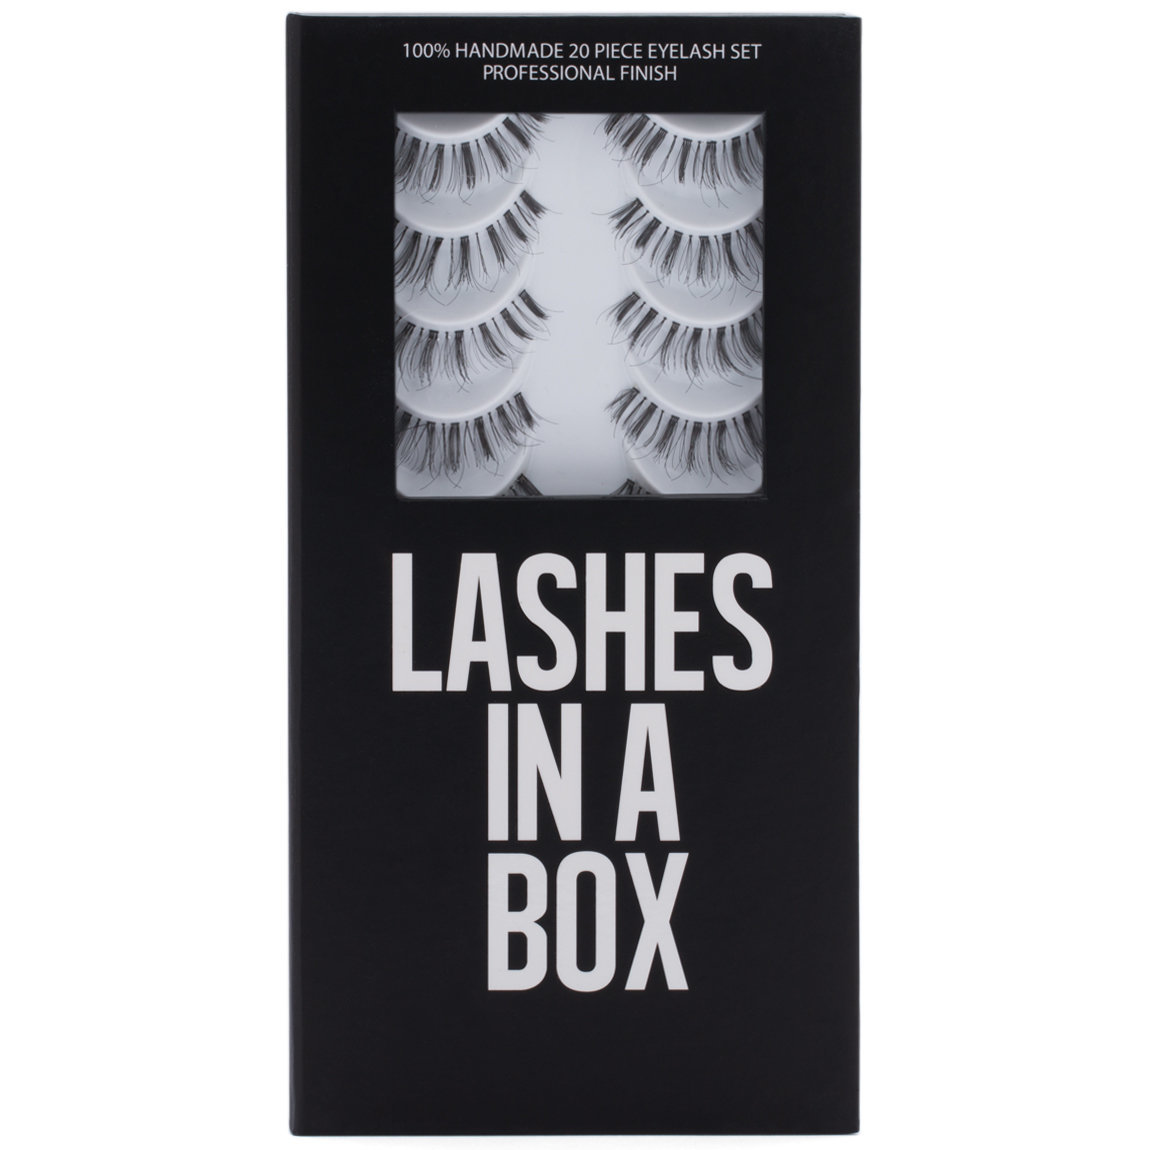 LASHES IN A BOX N°20 product smear.